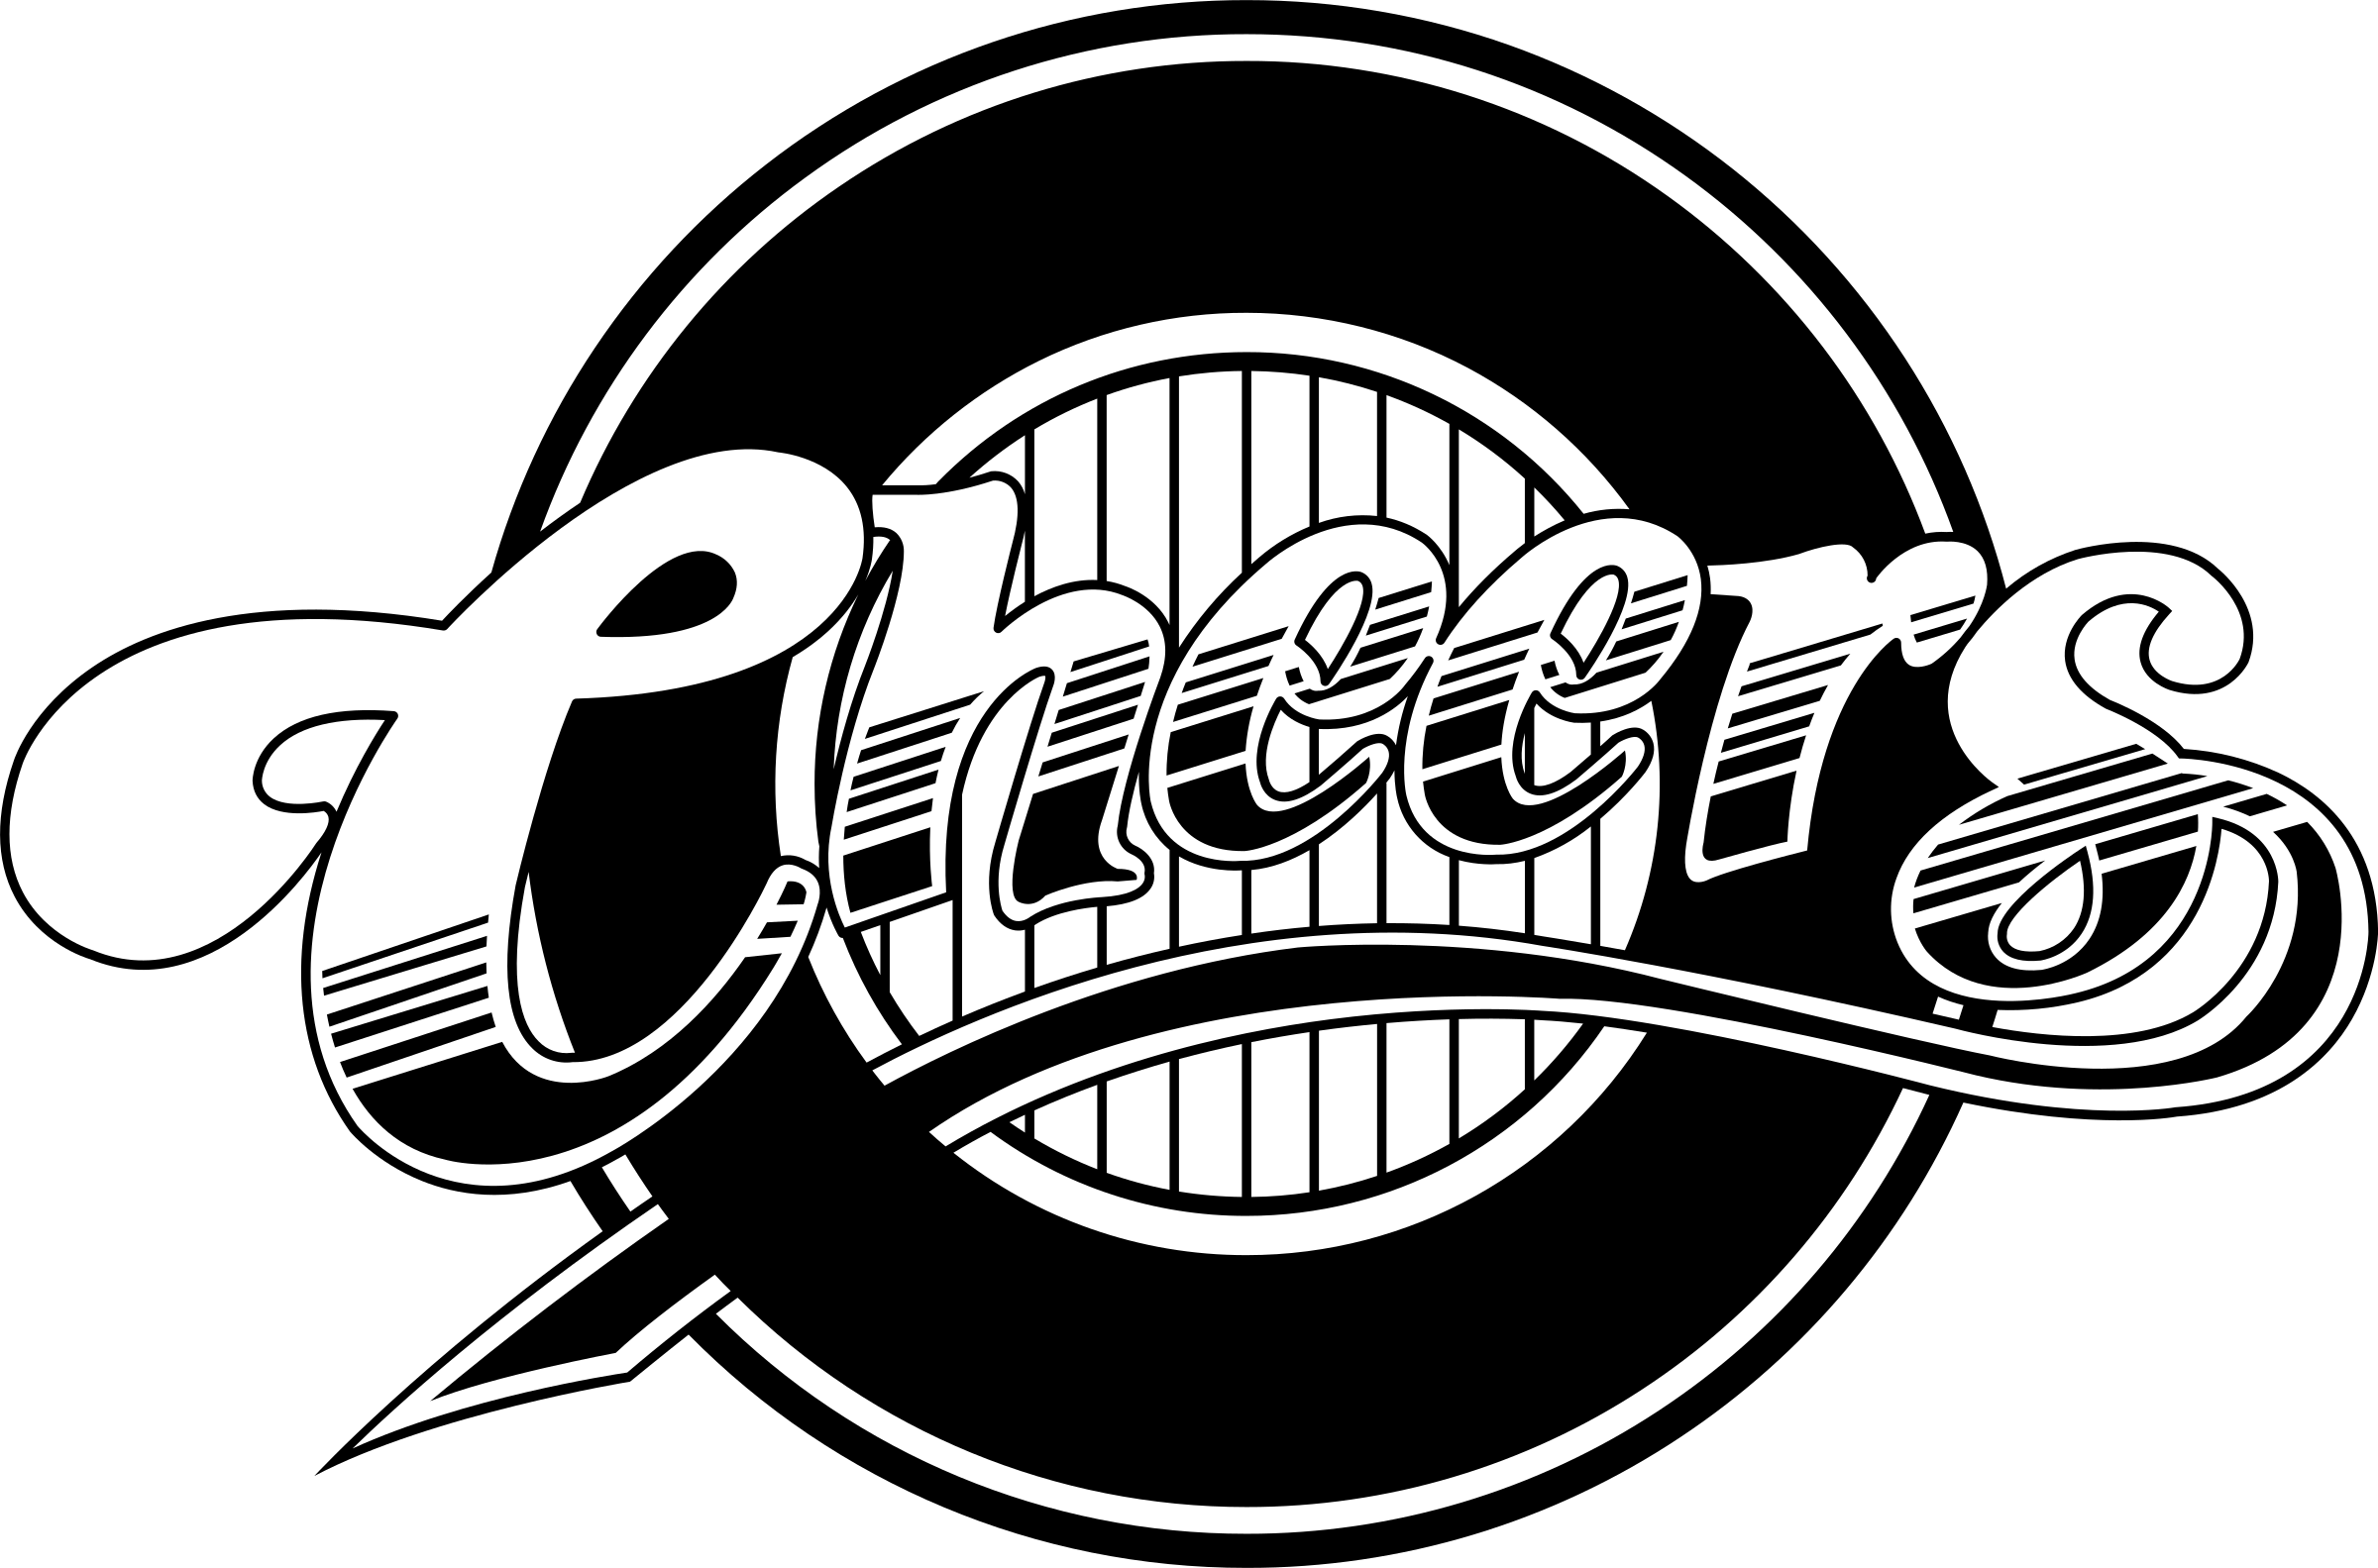 Cheers Logo PNG Transparent & SVG Vector.